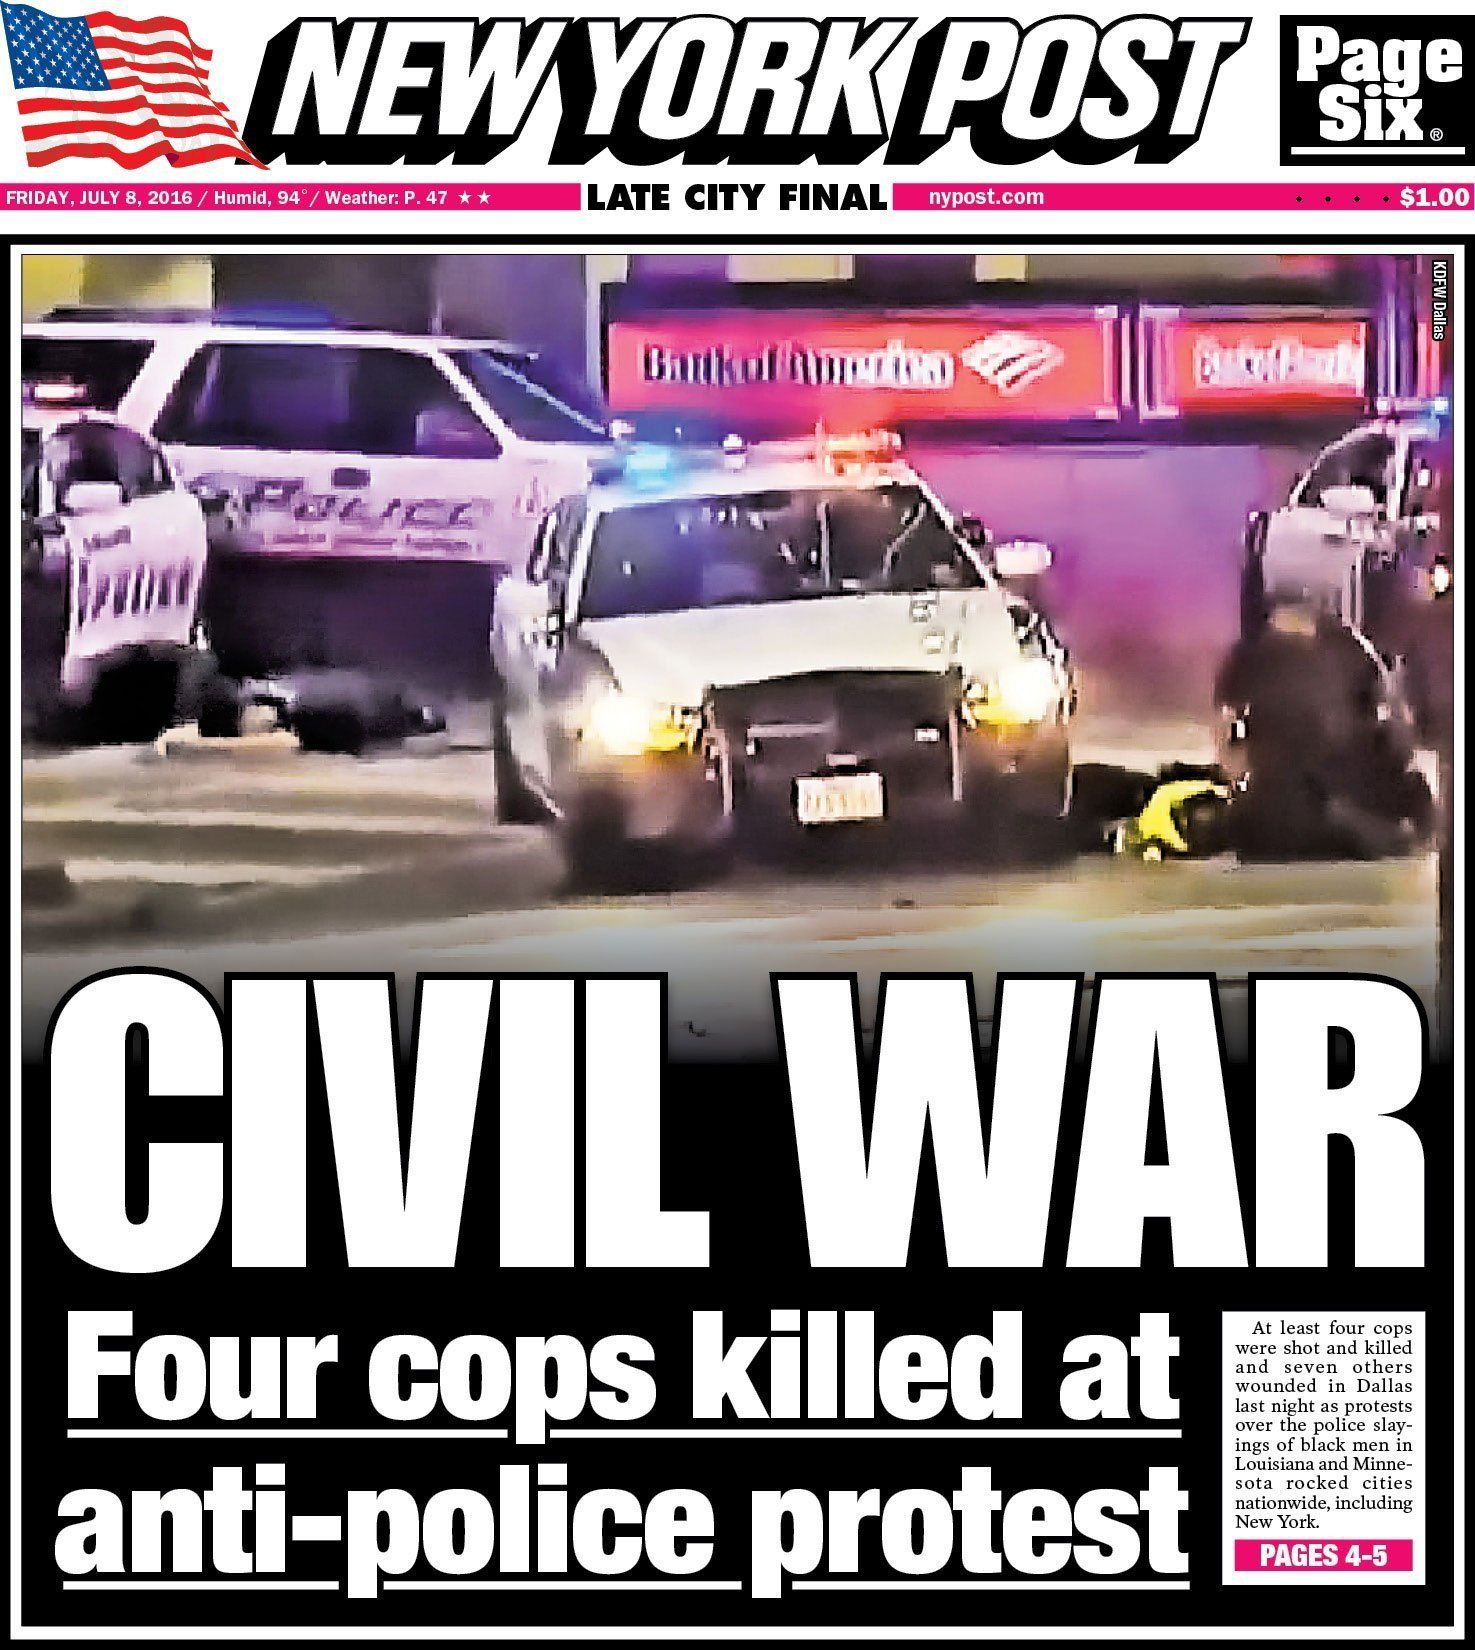 "The New York Post recklessly dubbed the Dallas shooting as part of a ""civil war."""